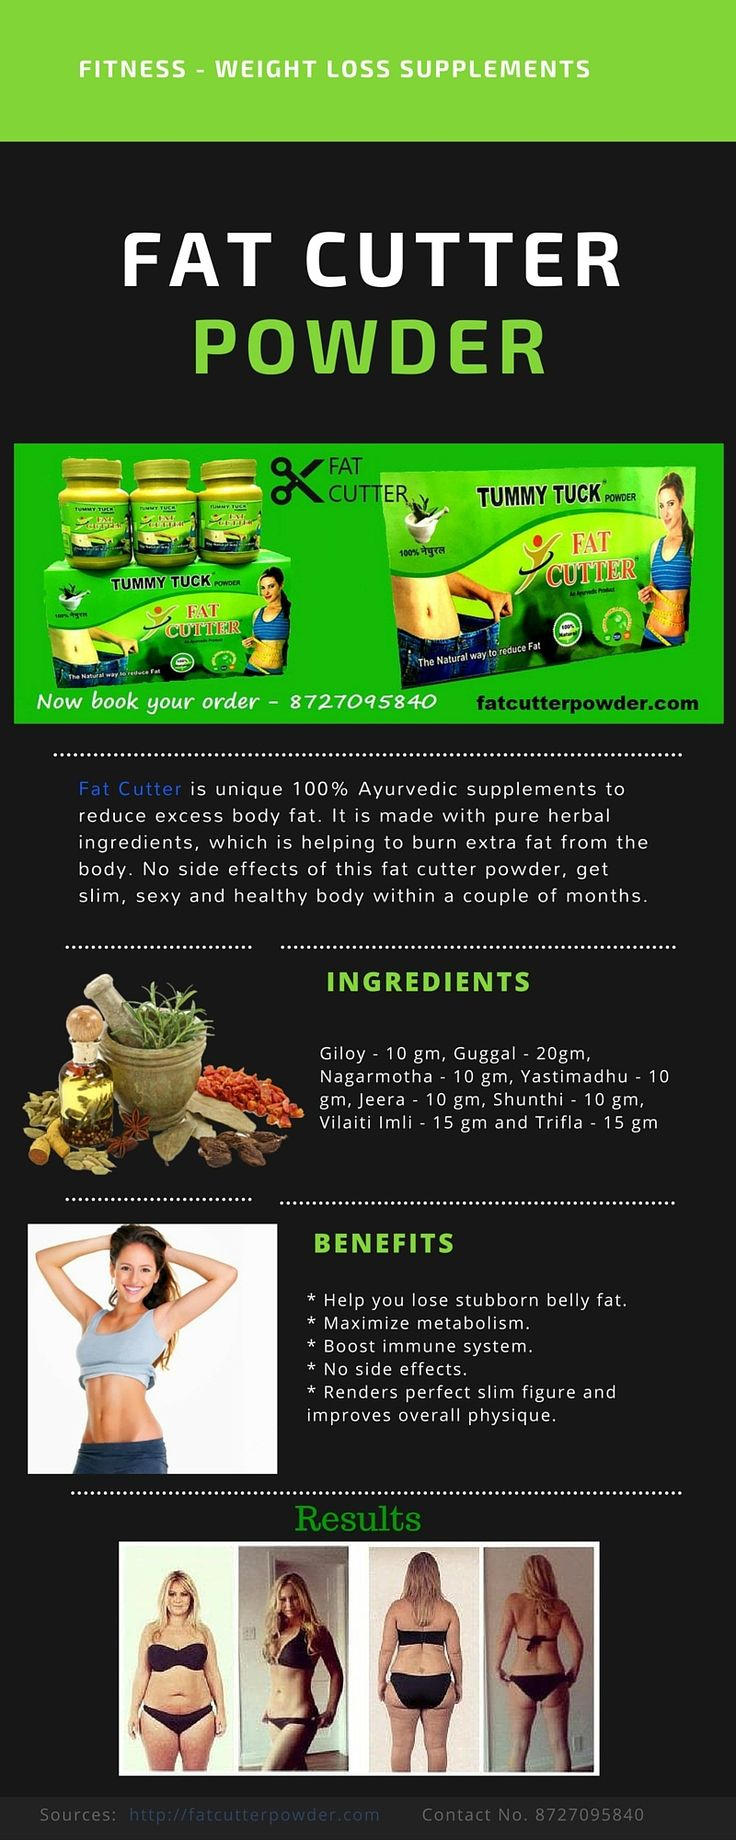 #Fat #cutter #powder is a unique way to #reduce #body #weight and gives a new look with a #healthy and #energetic body, its 100% safe to use.